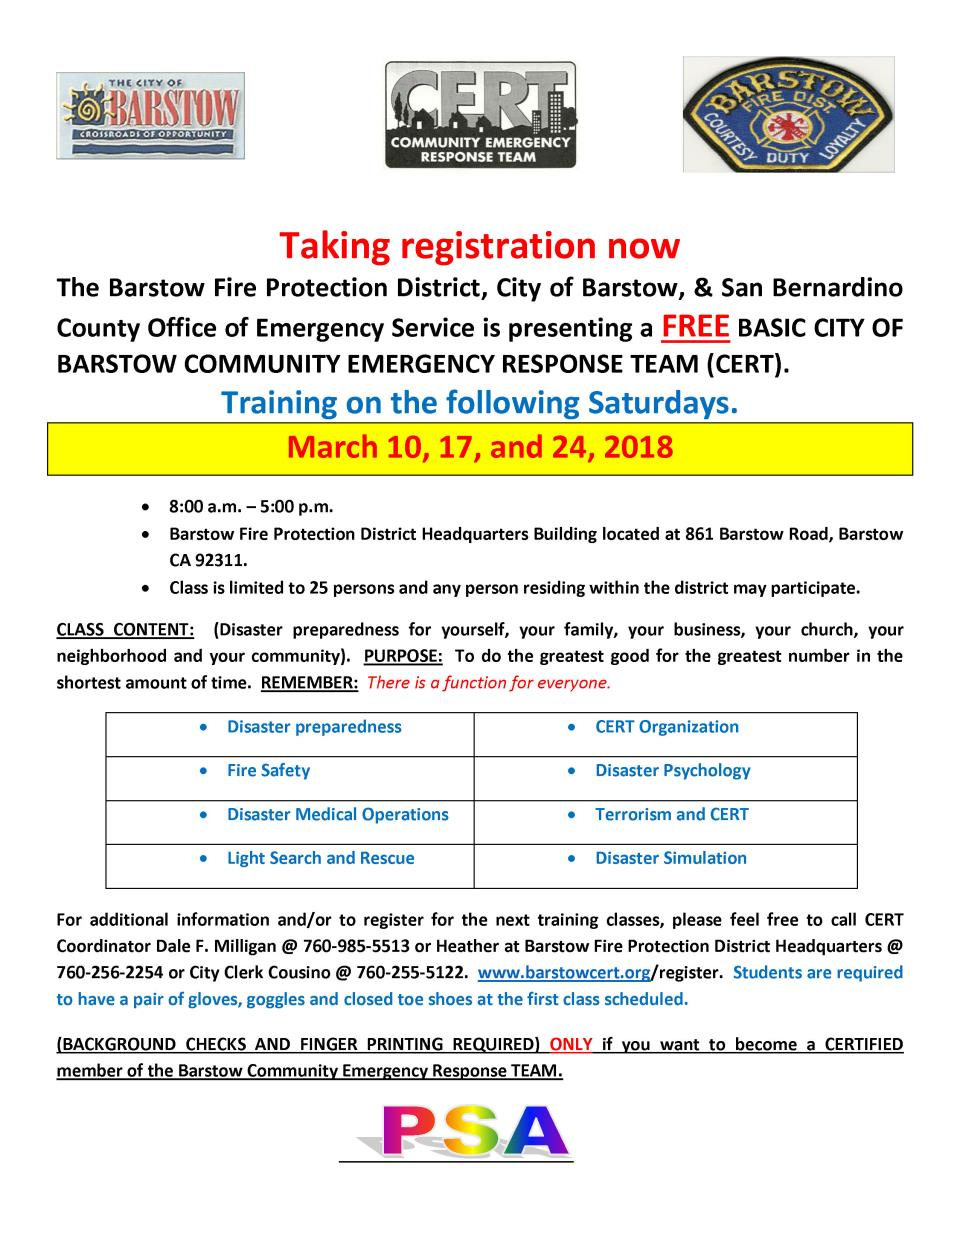 CERT course flyer MARCH CLASSES 03-2018